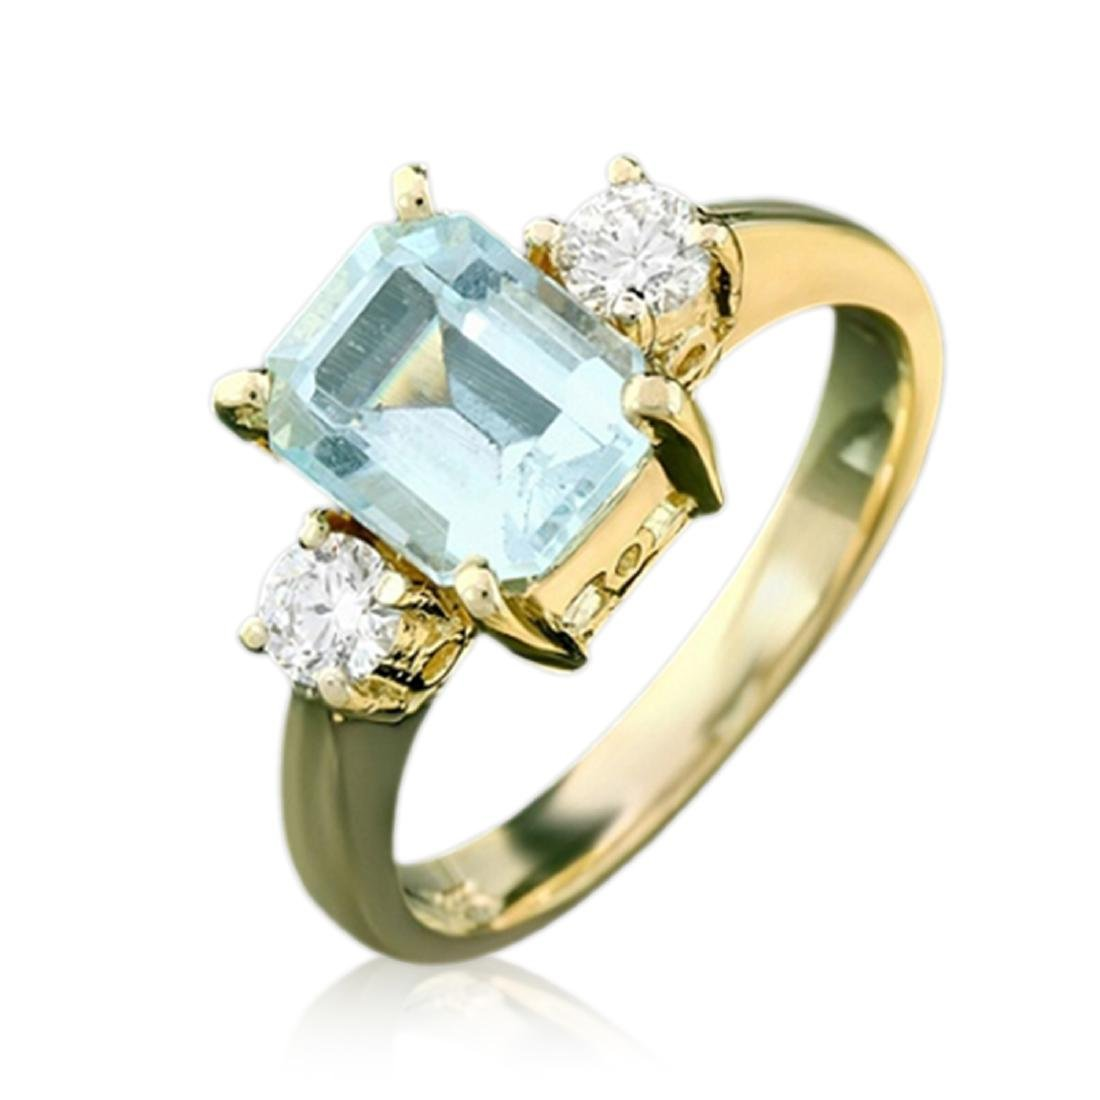 2.10 Carat Natural Aquamarine 18K Solid Yellow Gold